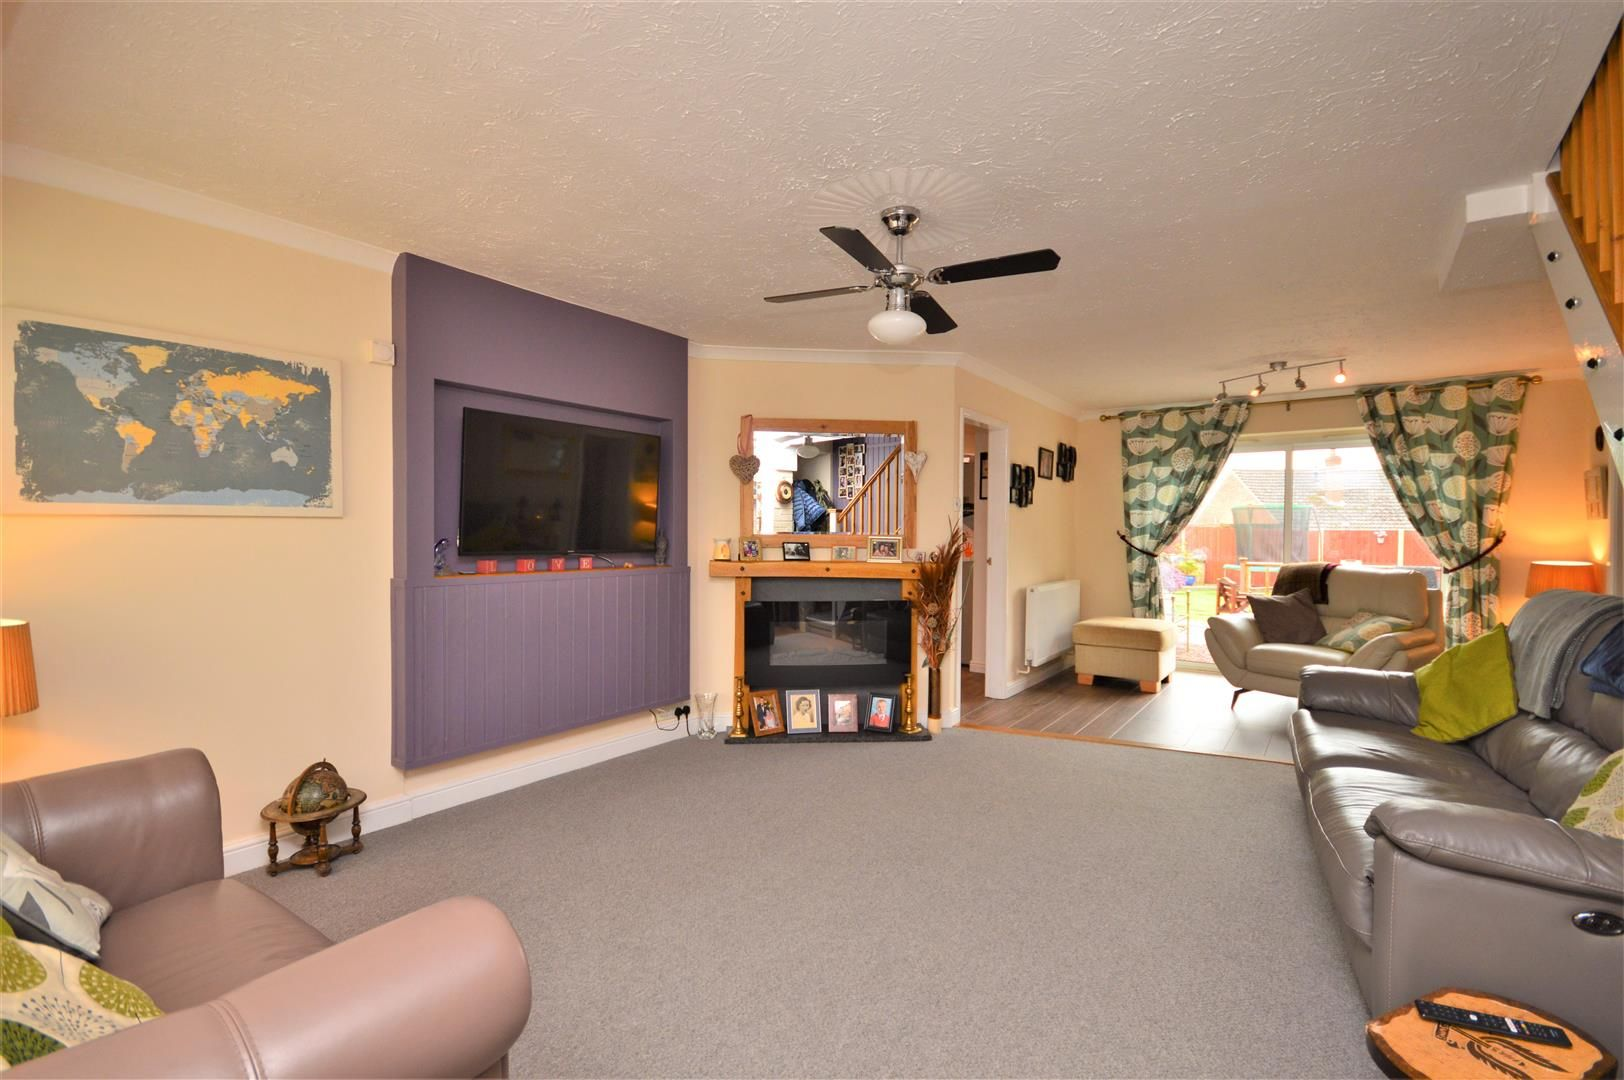 4 bed semi-detached for sale in Clehonger  - Property Image 4